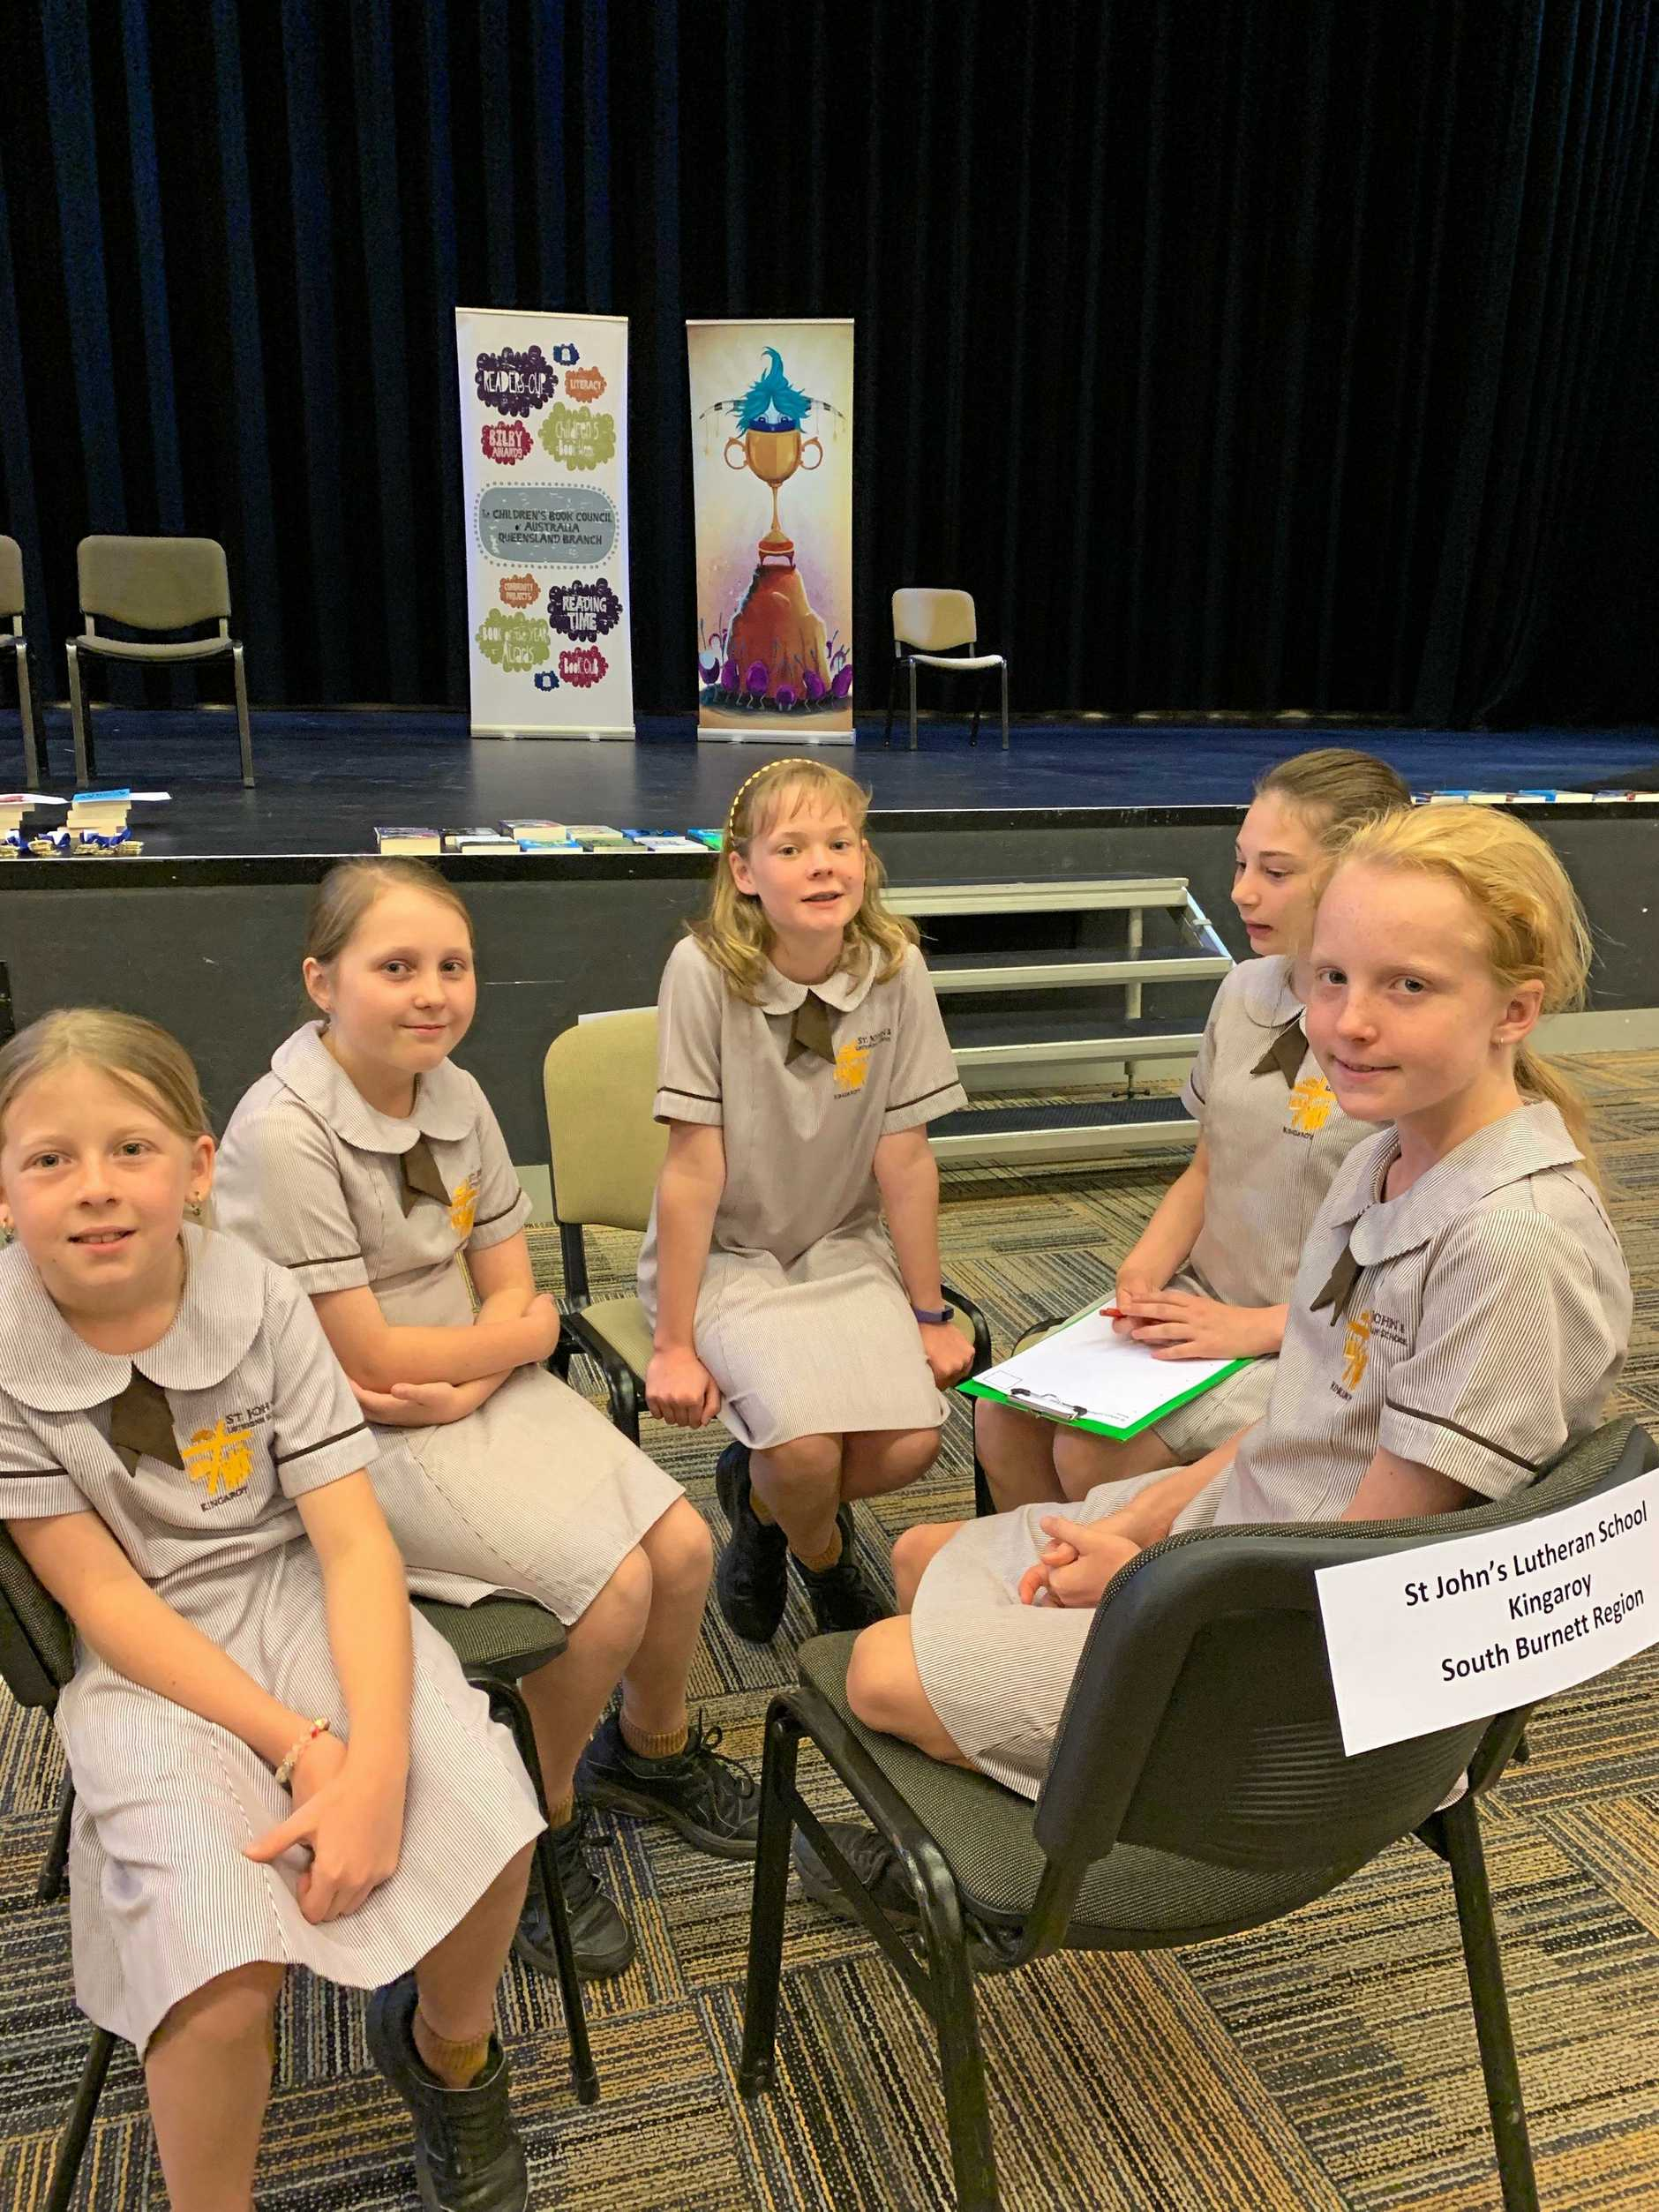 St John's Lutheran School Kingaroy's Reader's Cup team Kayleigh Johannesen, Beccy Sharp, Amelia Lonsdale, Aliyah and Miller Brown finished 15th in Queensland.